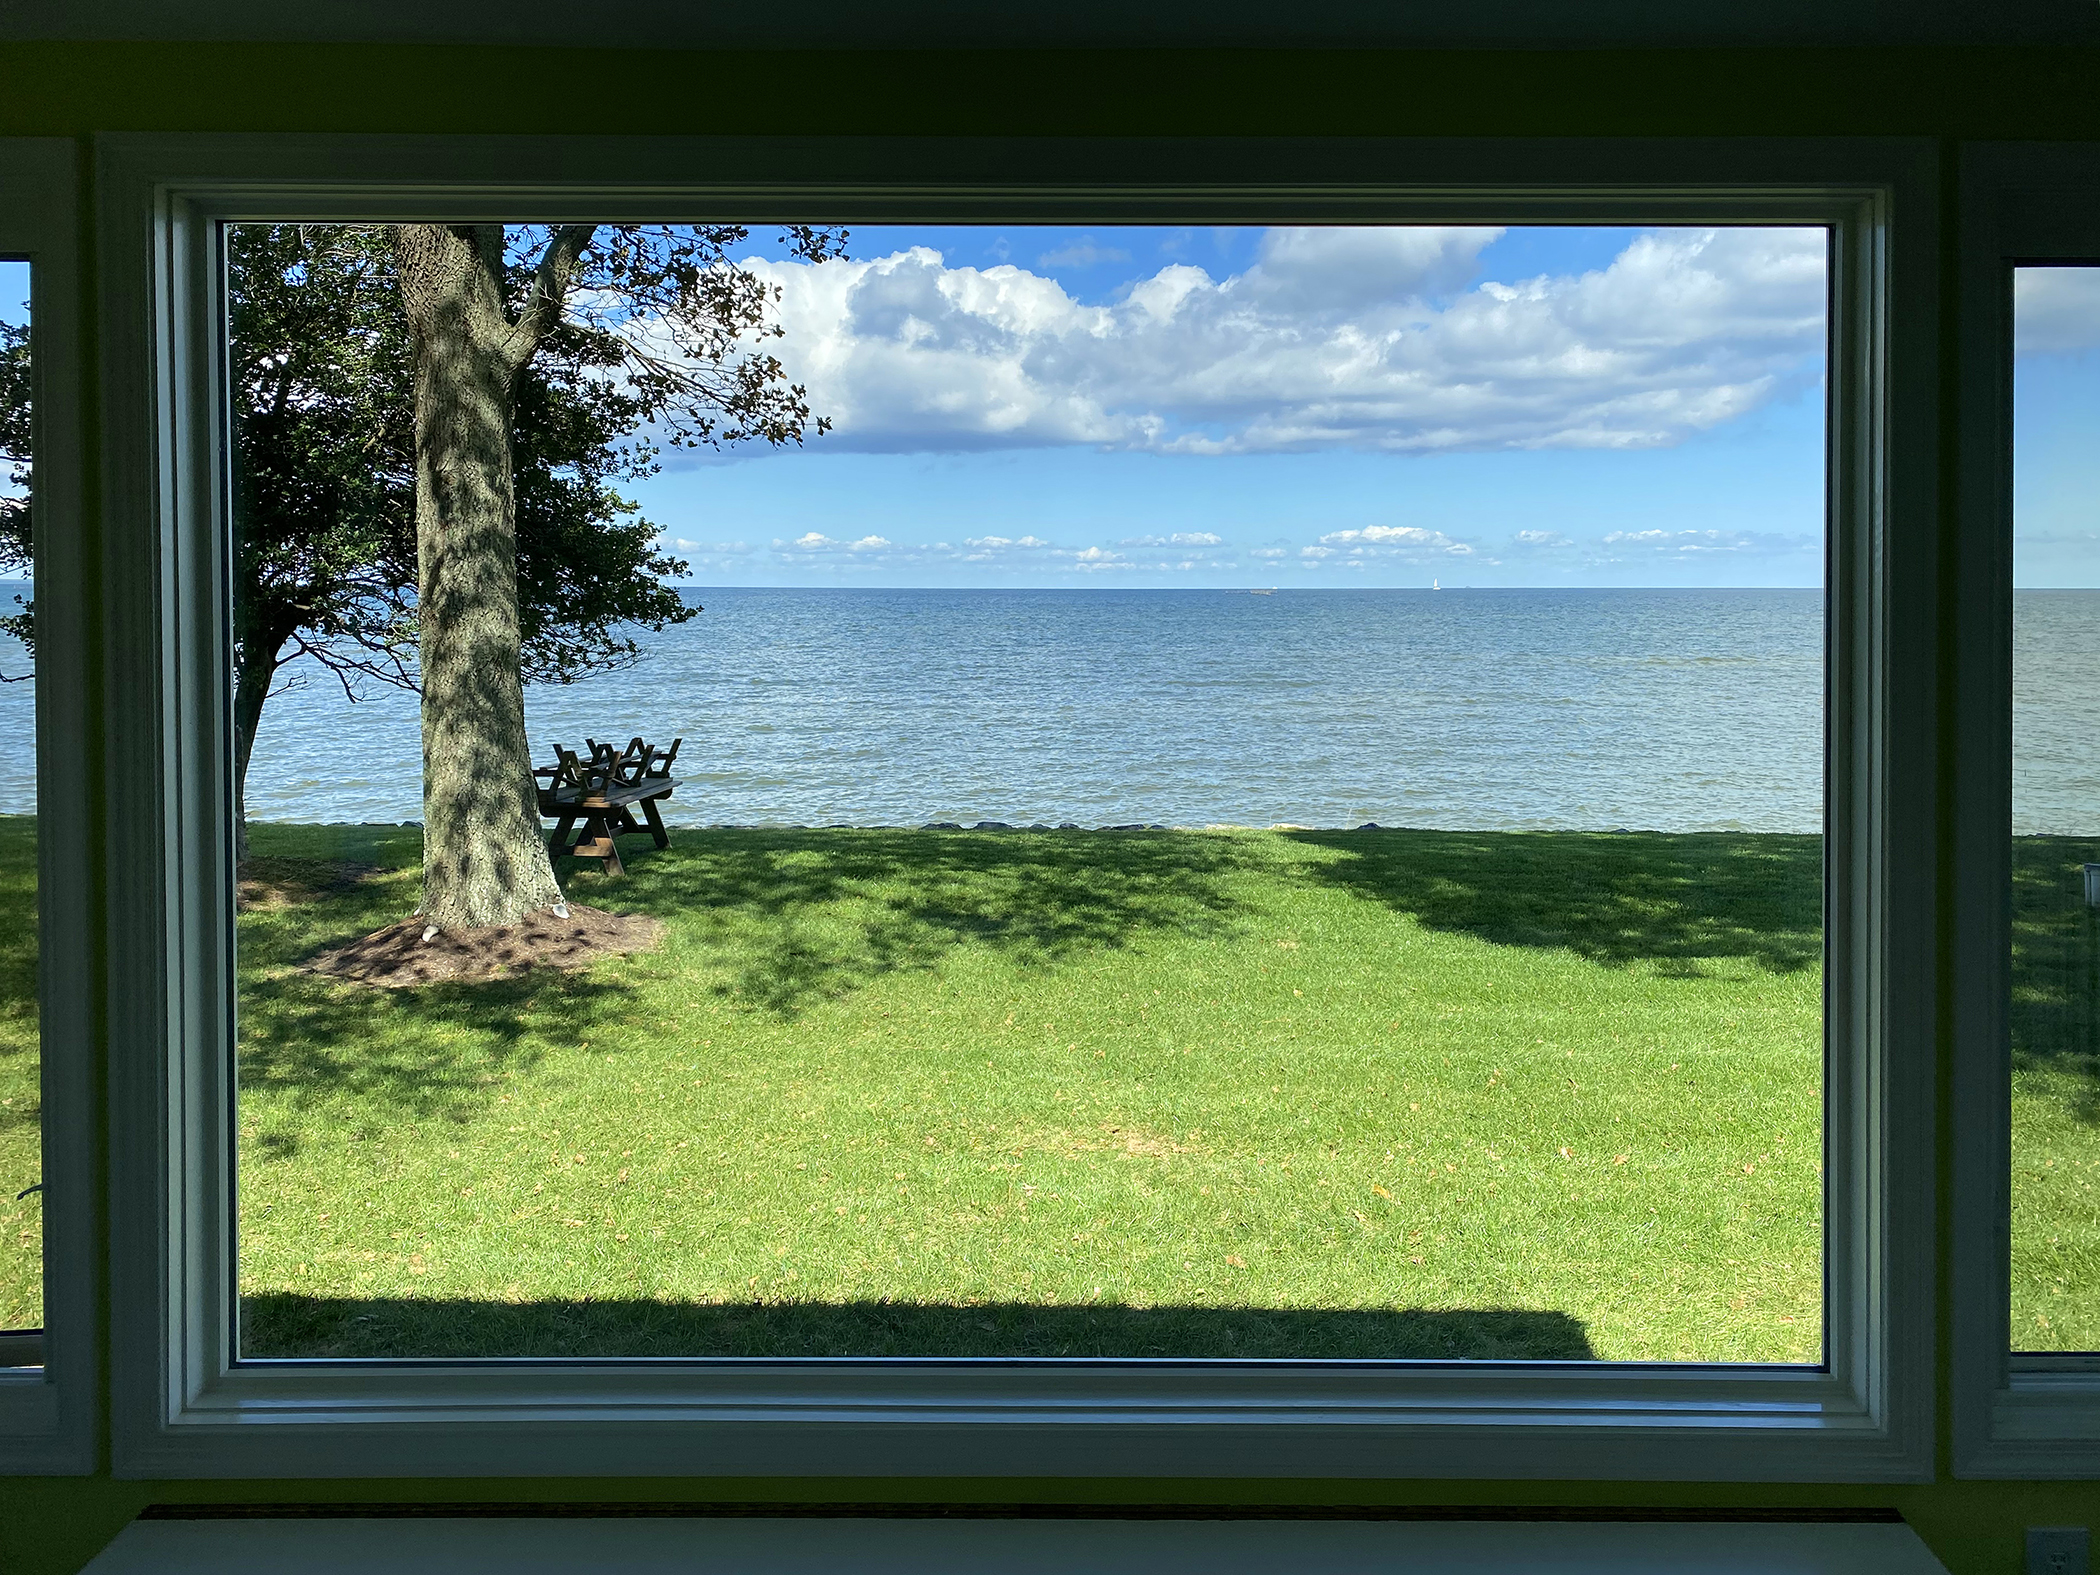 Make the Most of Your View with Lifestyle Series Windows